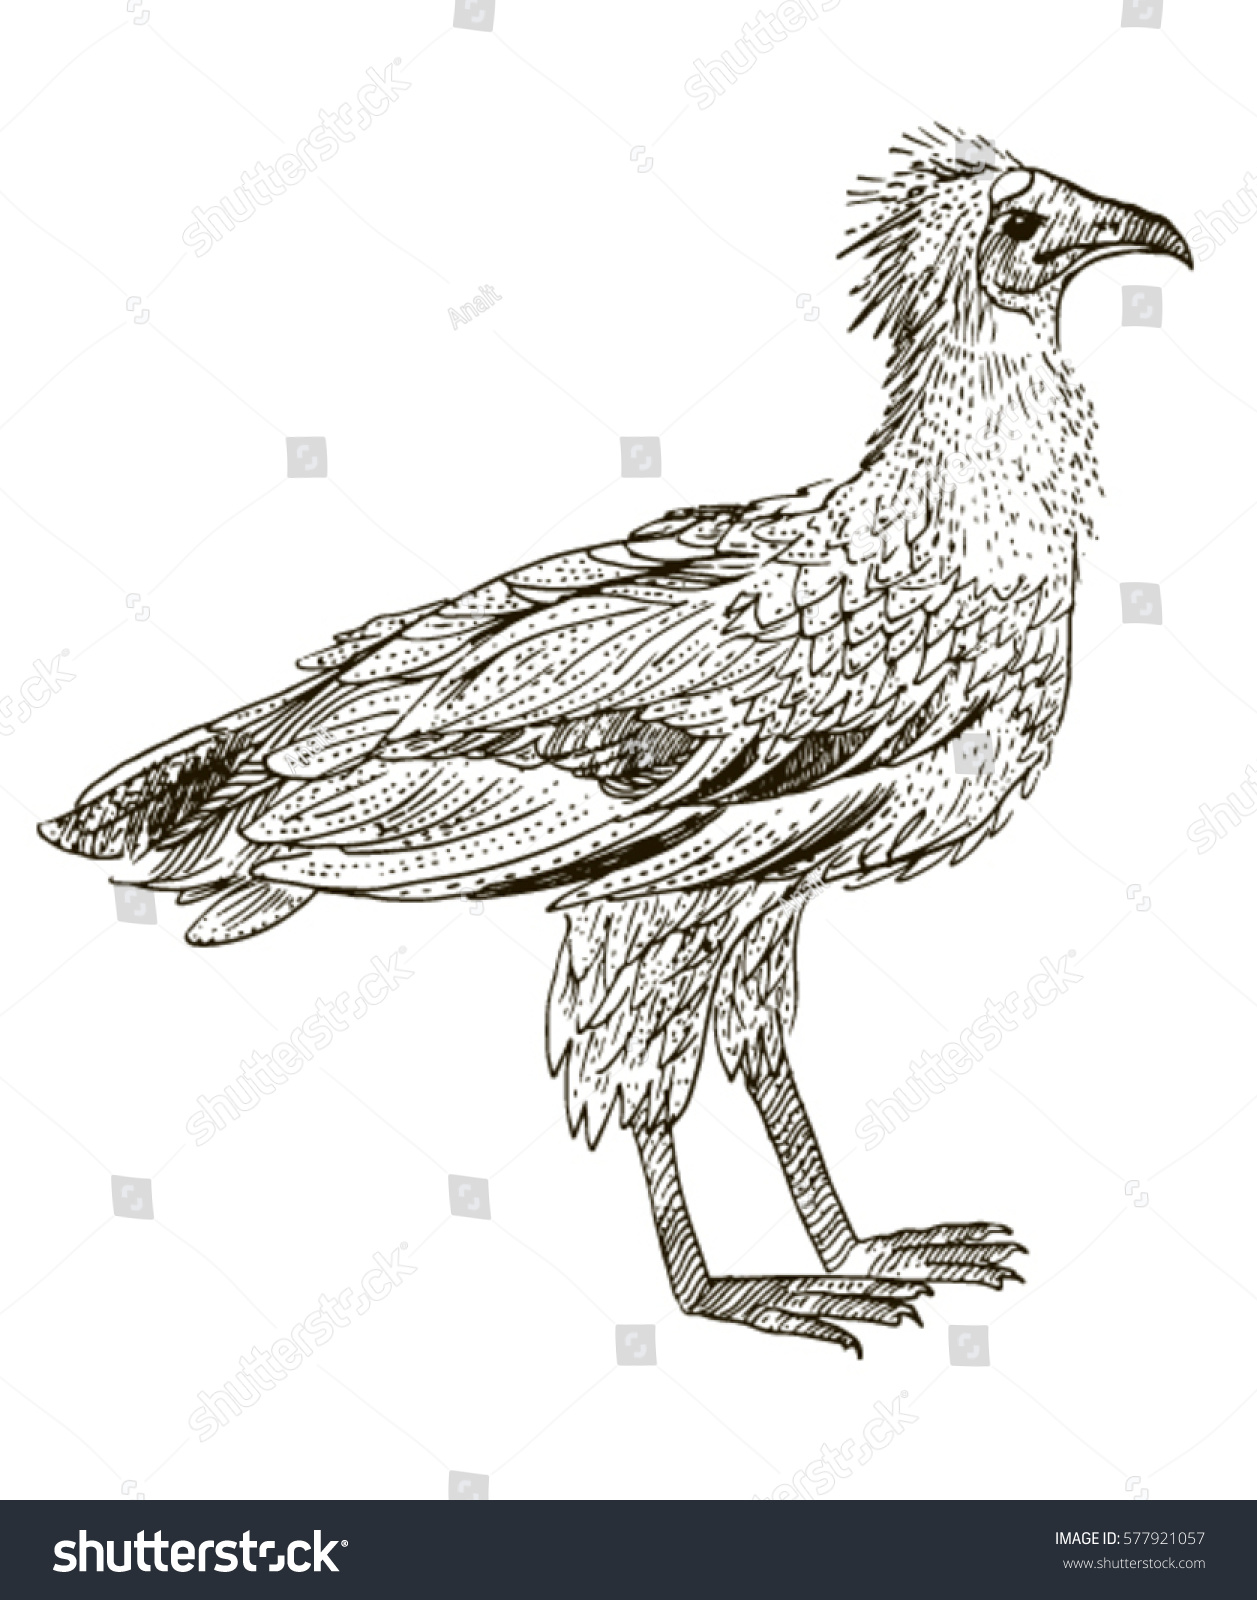 egyptian vulture drawing - photo #22